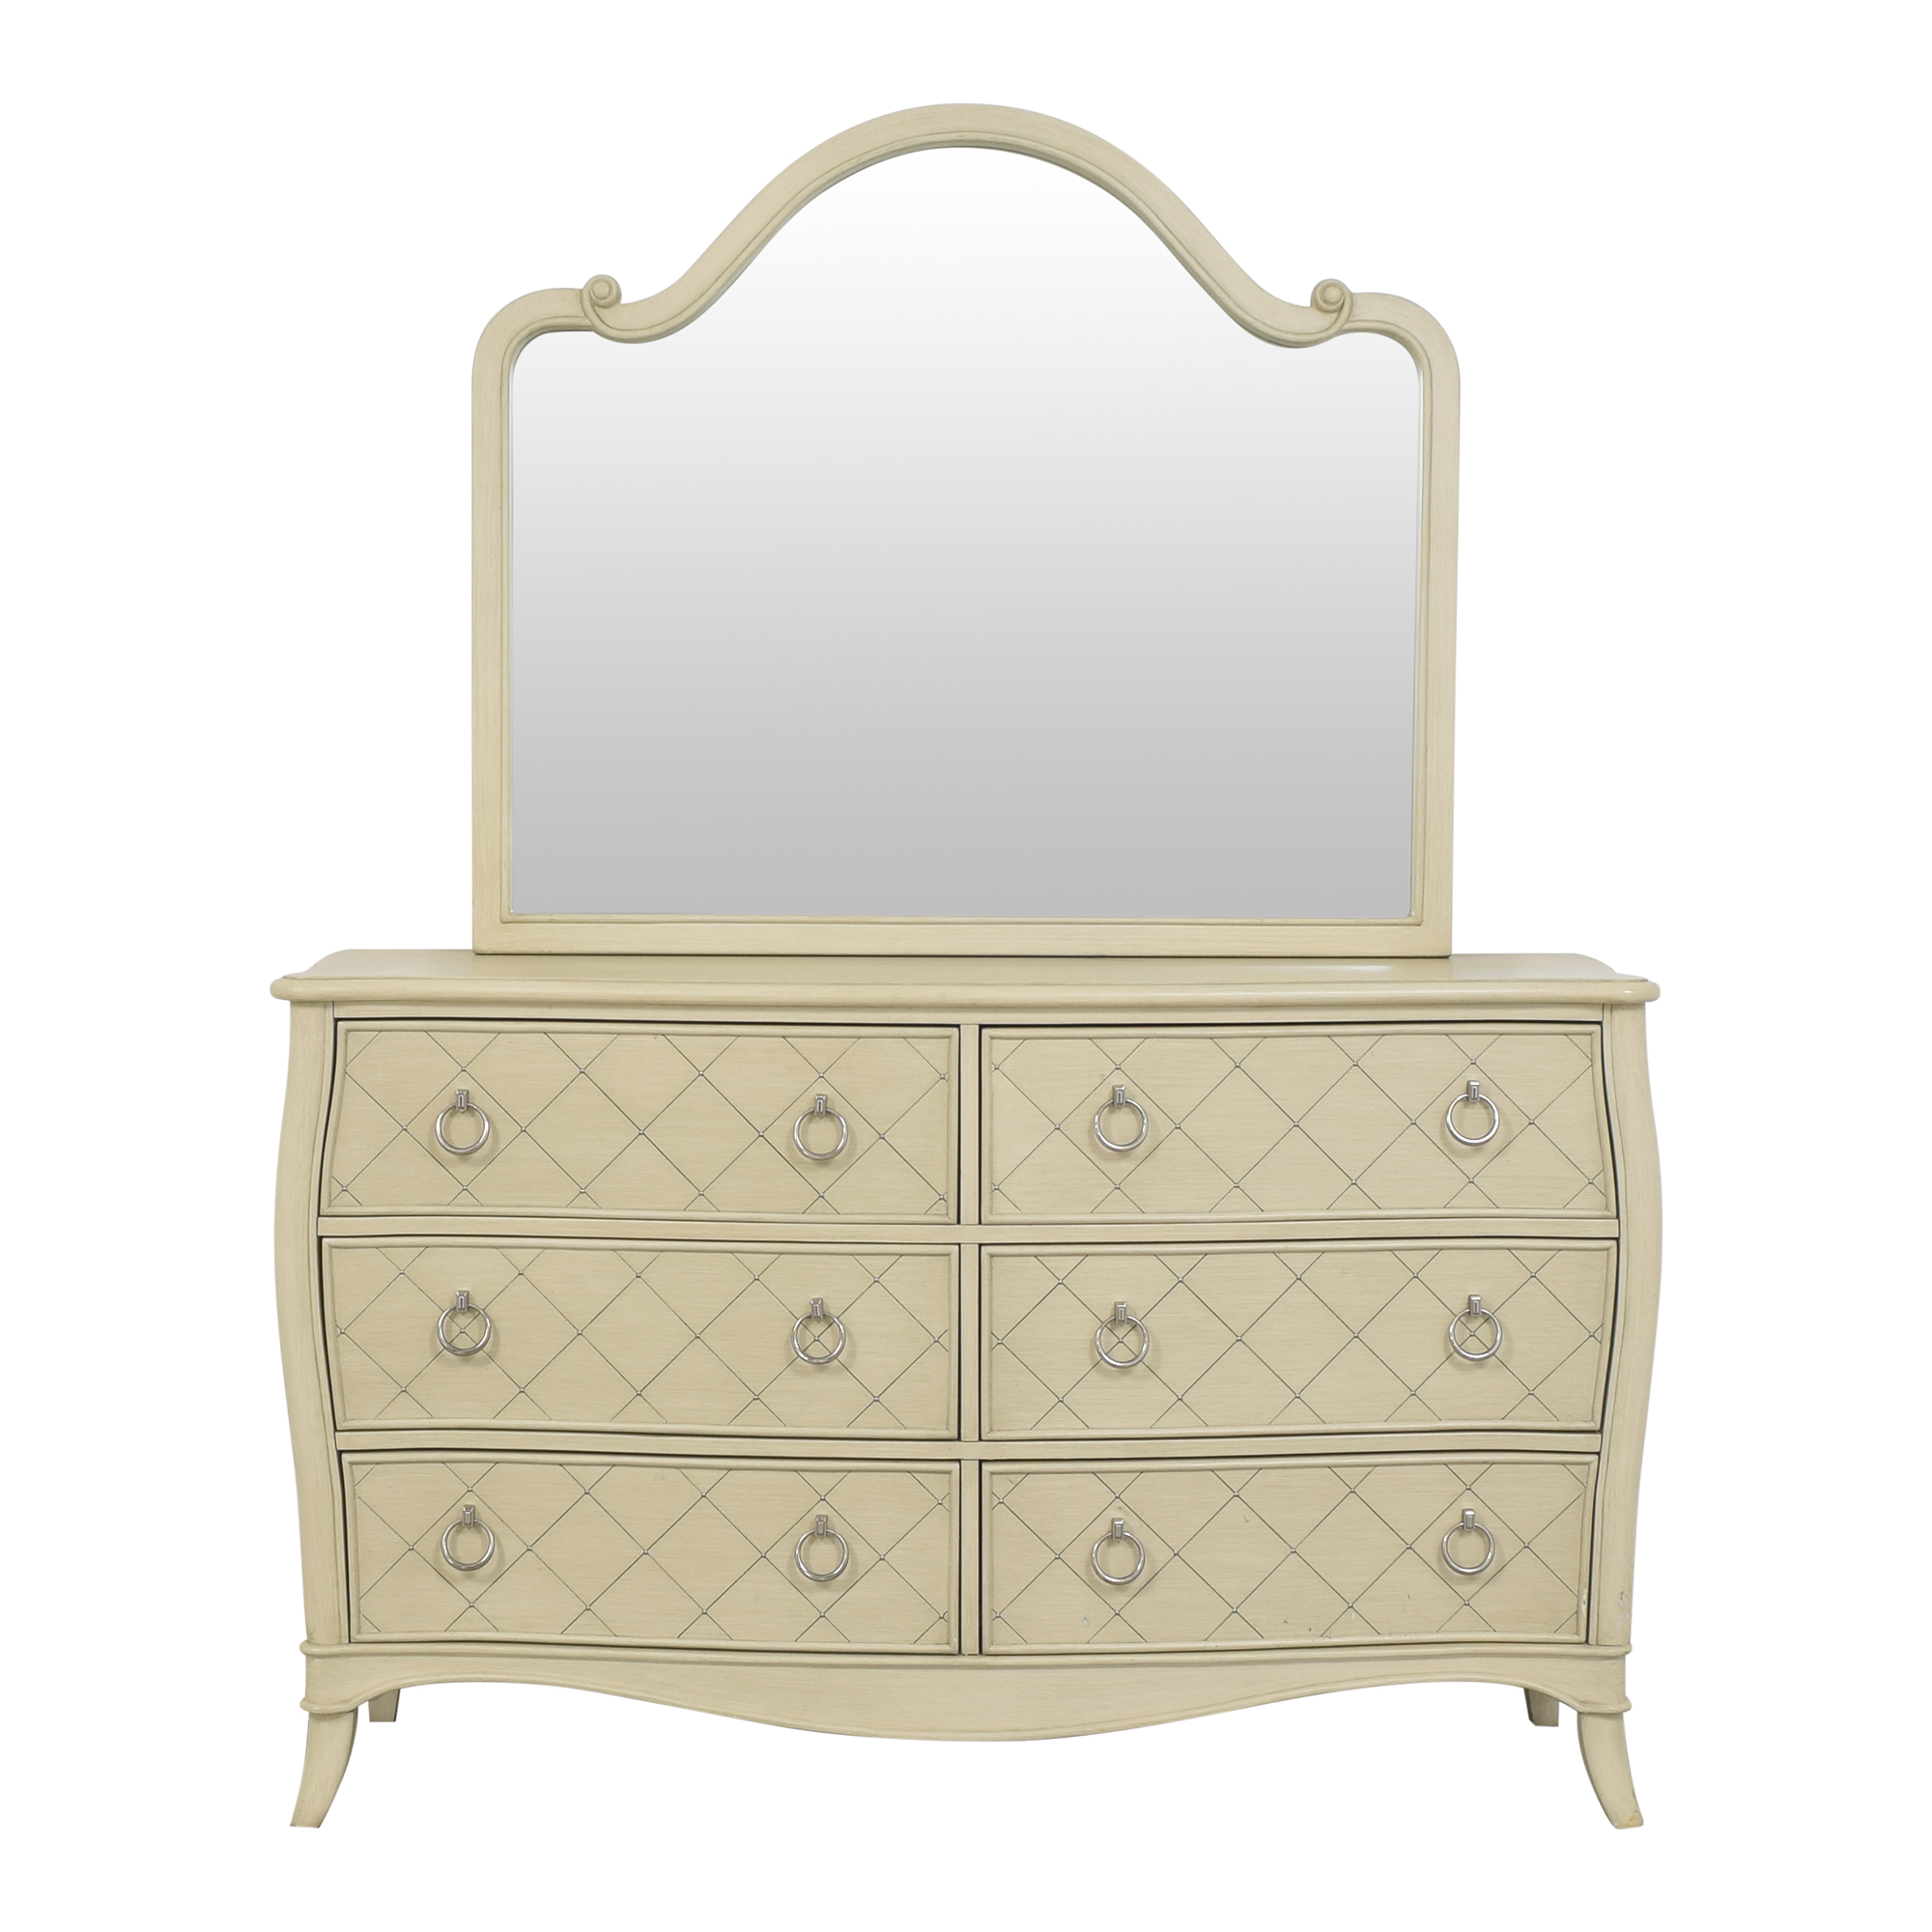 buy Raymour & Flanigan Dresser with Mirror Raymour & Flanigan Storage